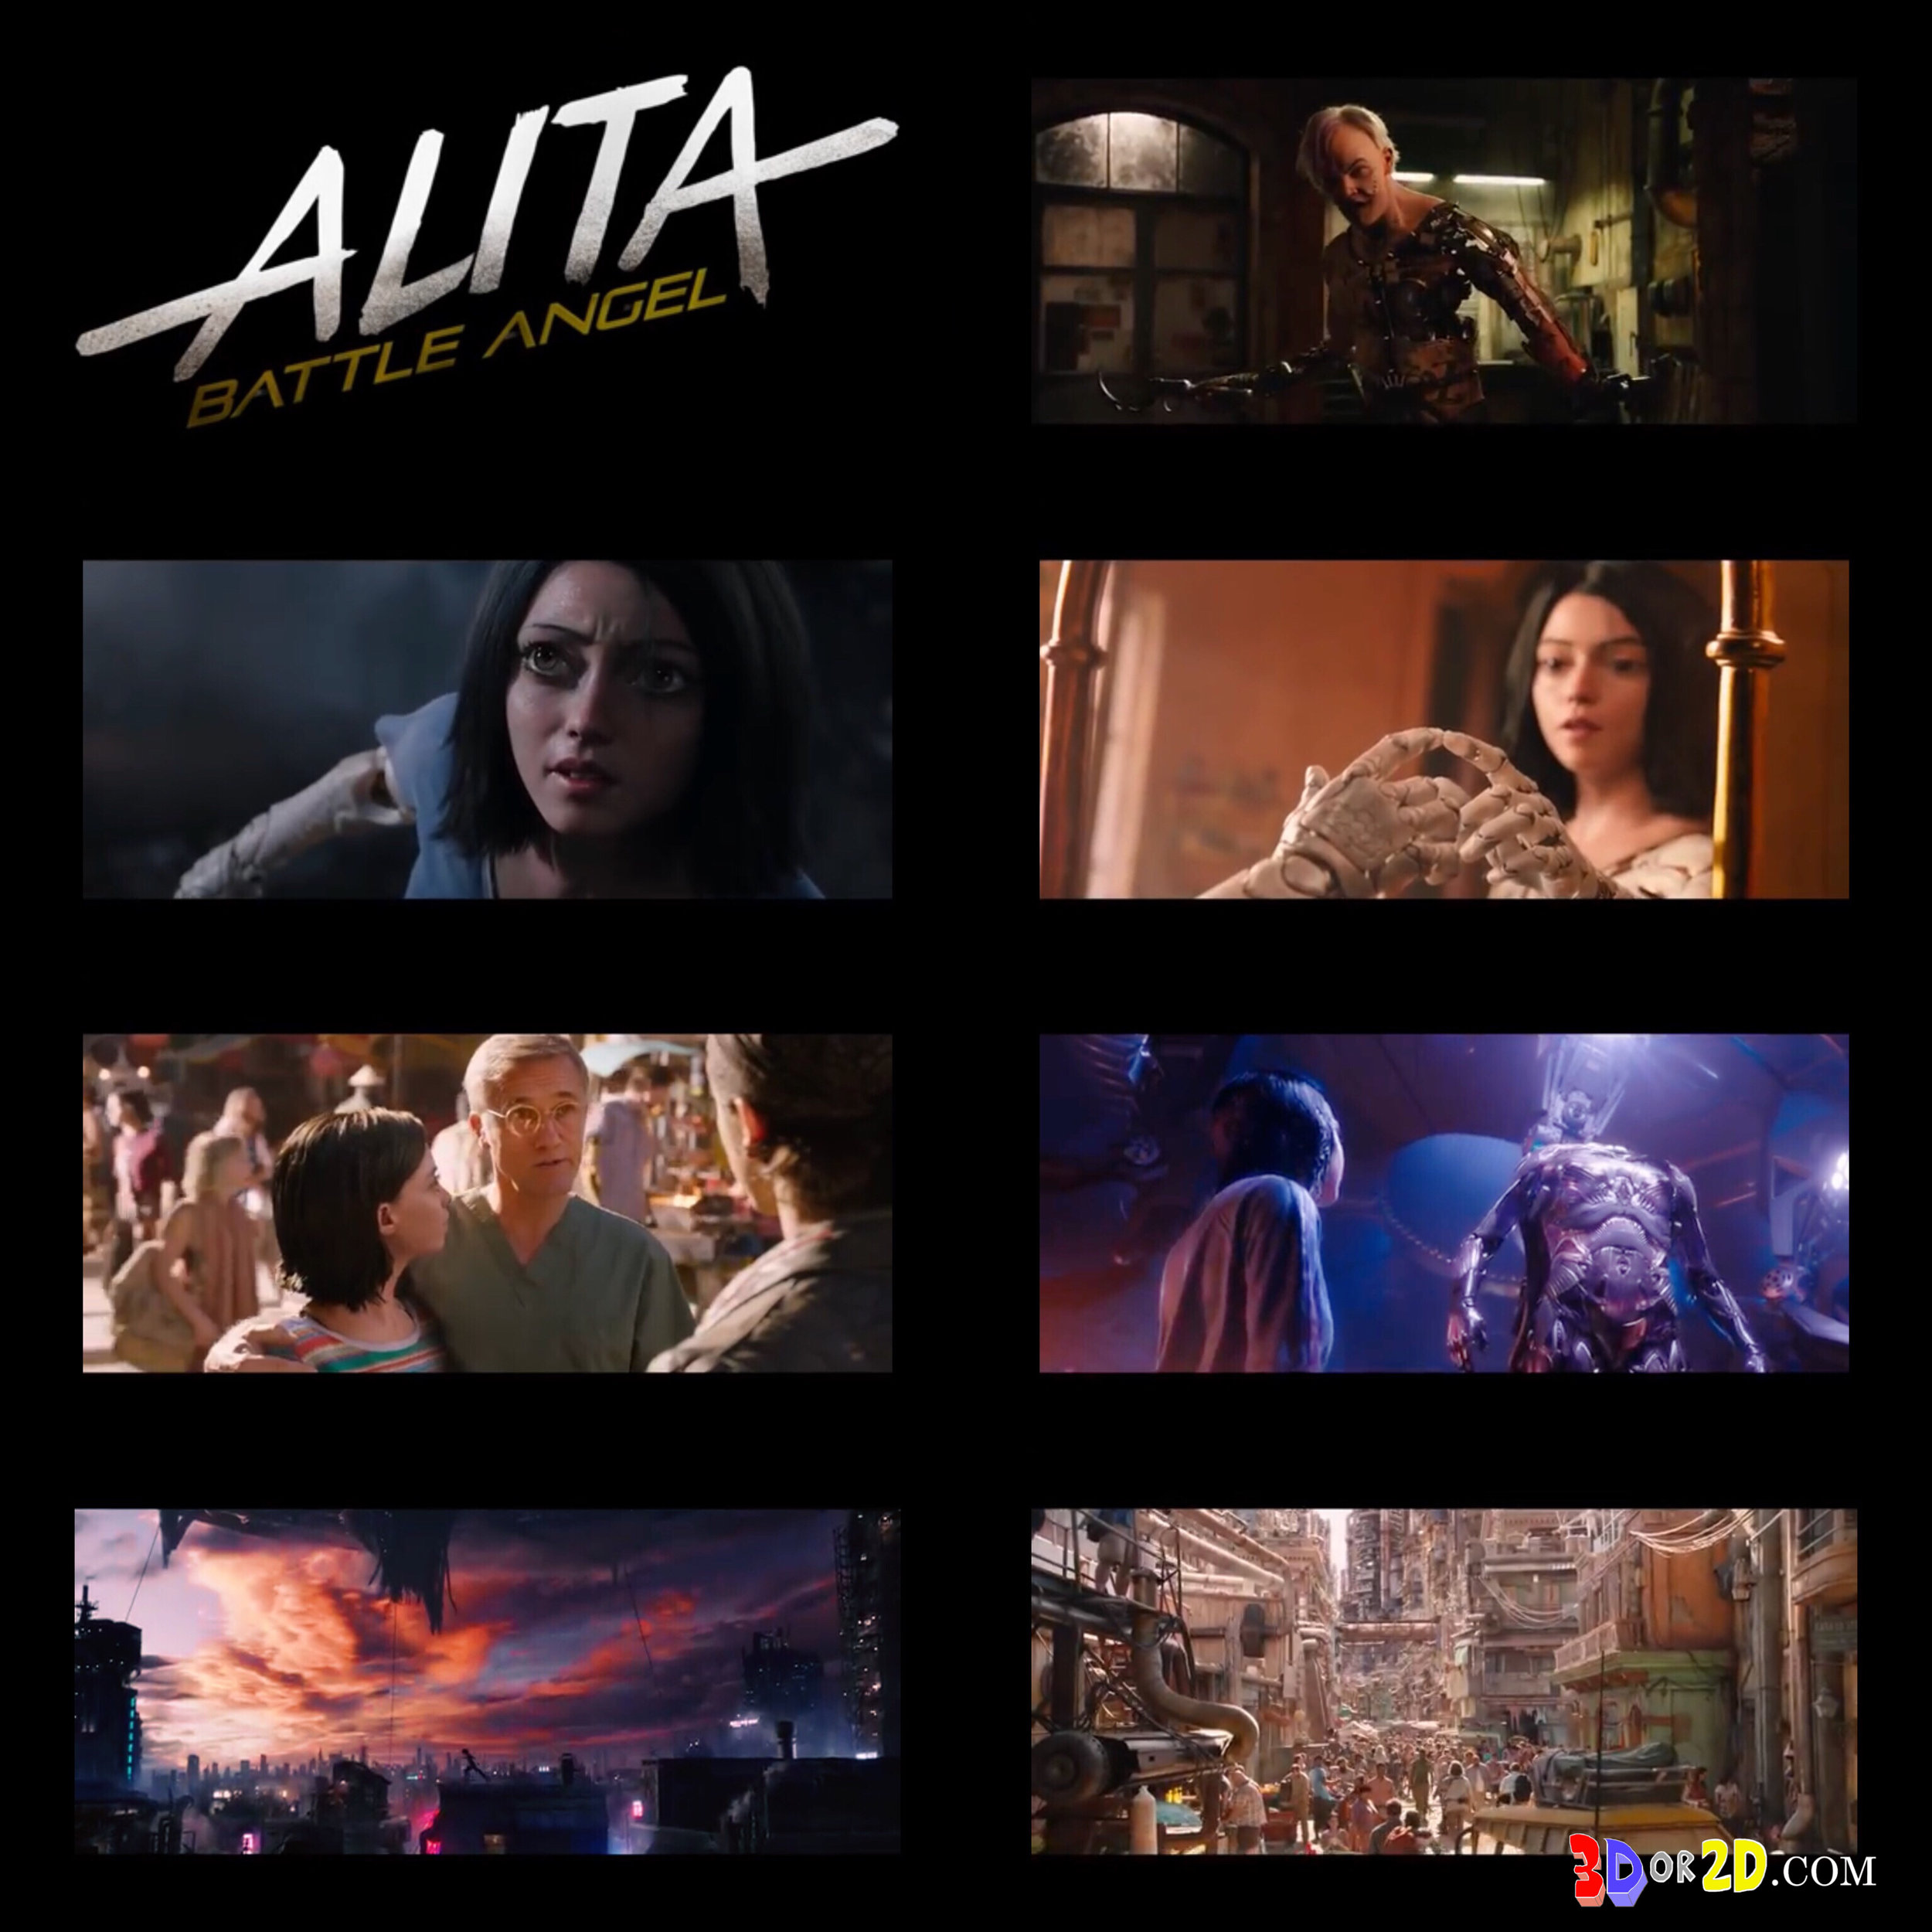 Photo Collage from the trailer